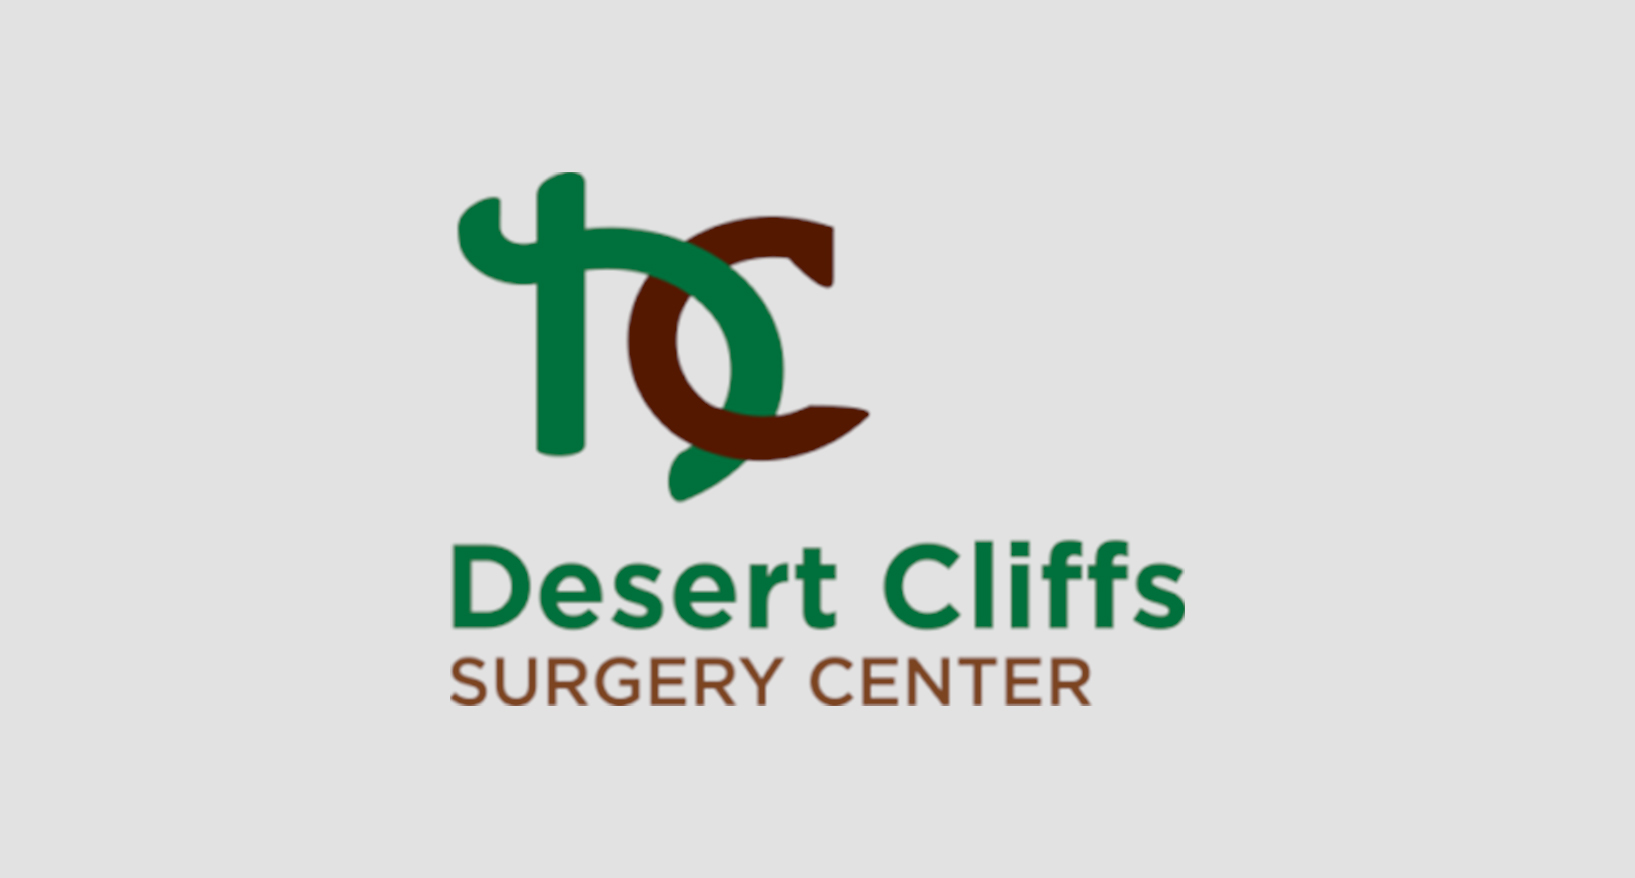 Good News for Desert Cliffs